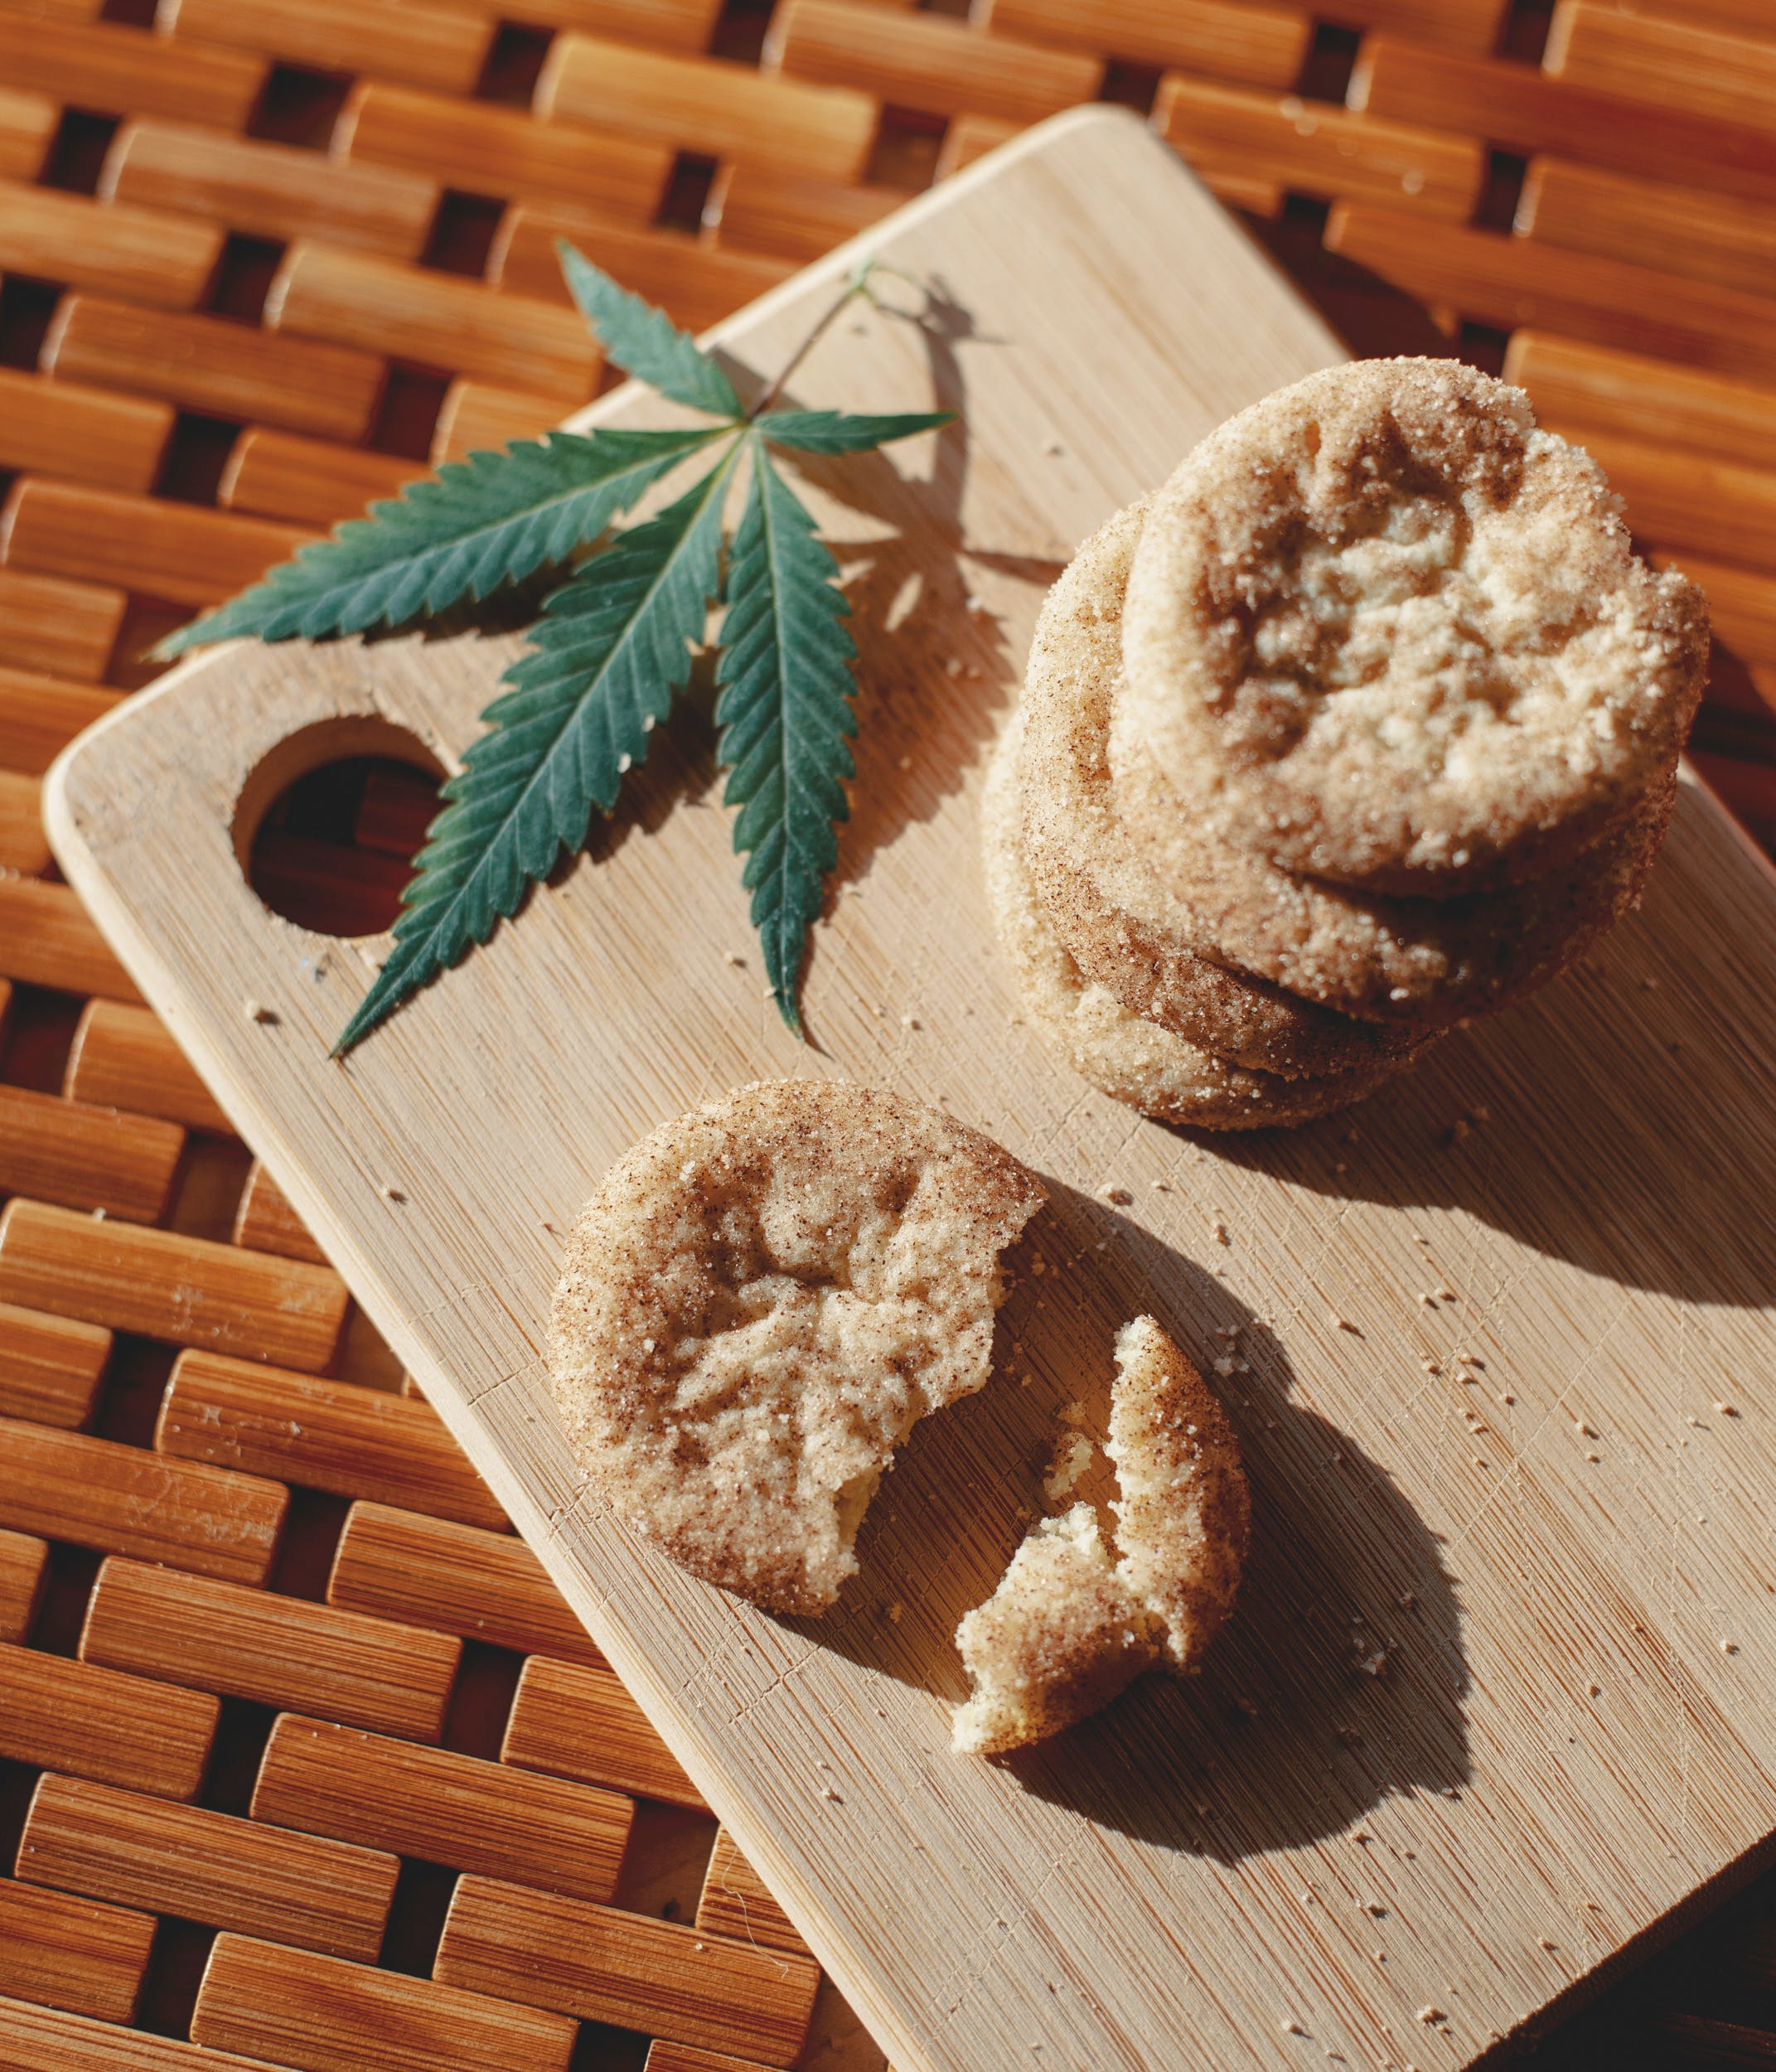 Best Weed Cookies 5 These Are The Best Weed Cookies Weve Ever Tried